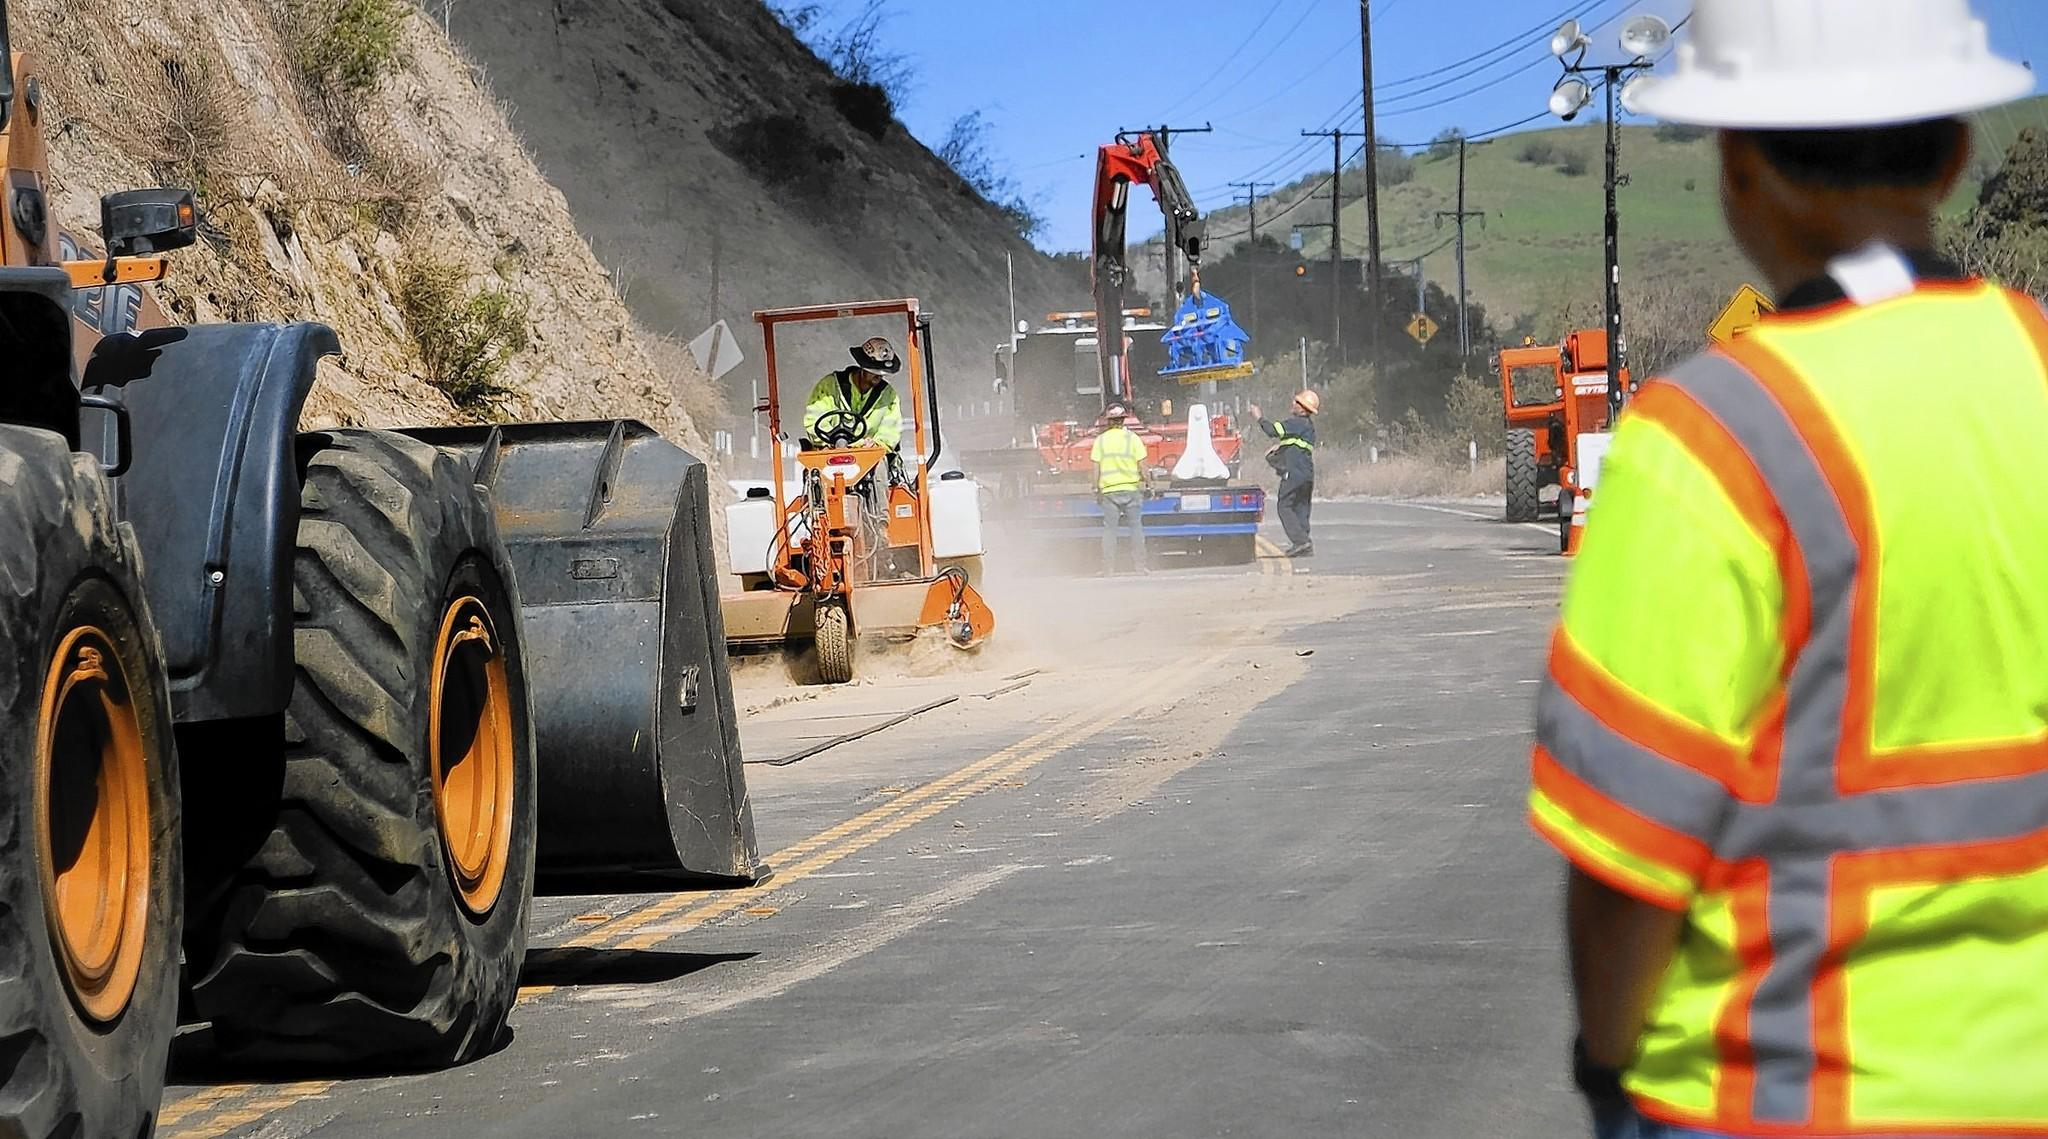 Road crews continue to clean up debris from a rock slide on Carbon Canyon Road in Brea after Friday's earthquake. The road has been closed since Friday night and CalTrans plans to reopen the road at 4 a.m. Tuesday.